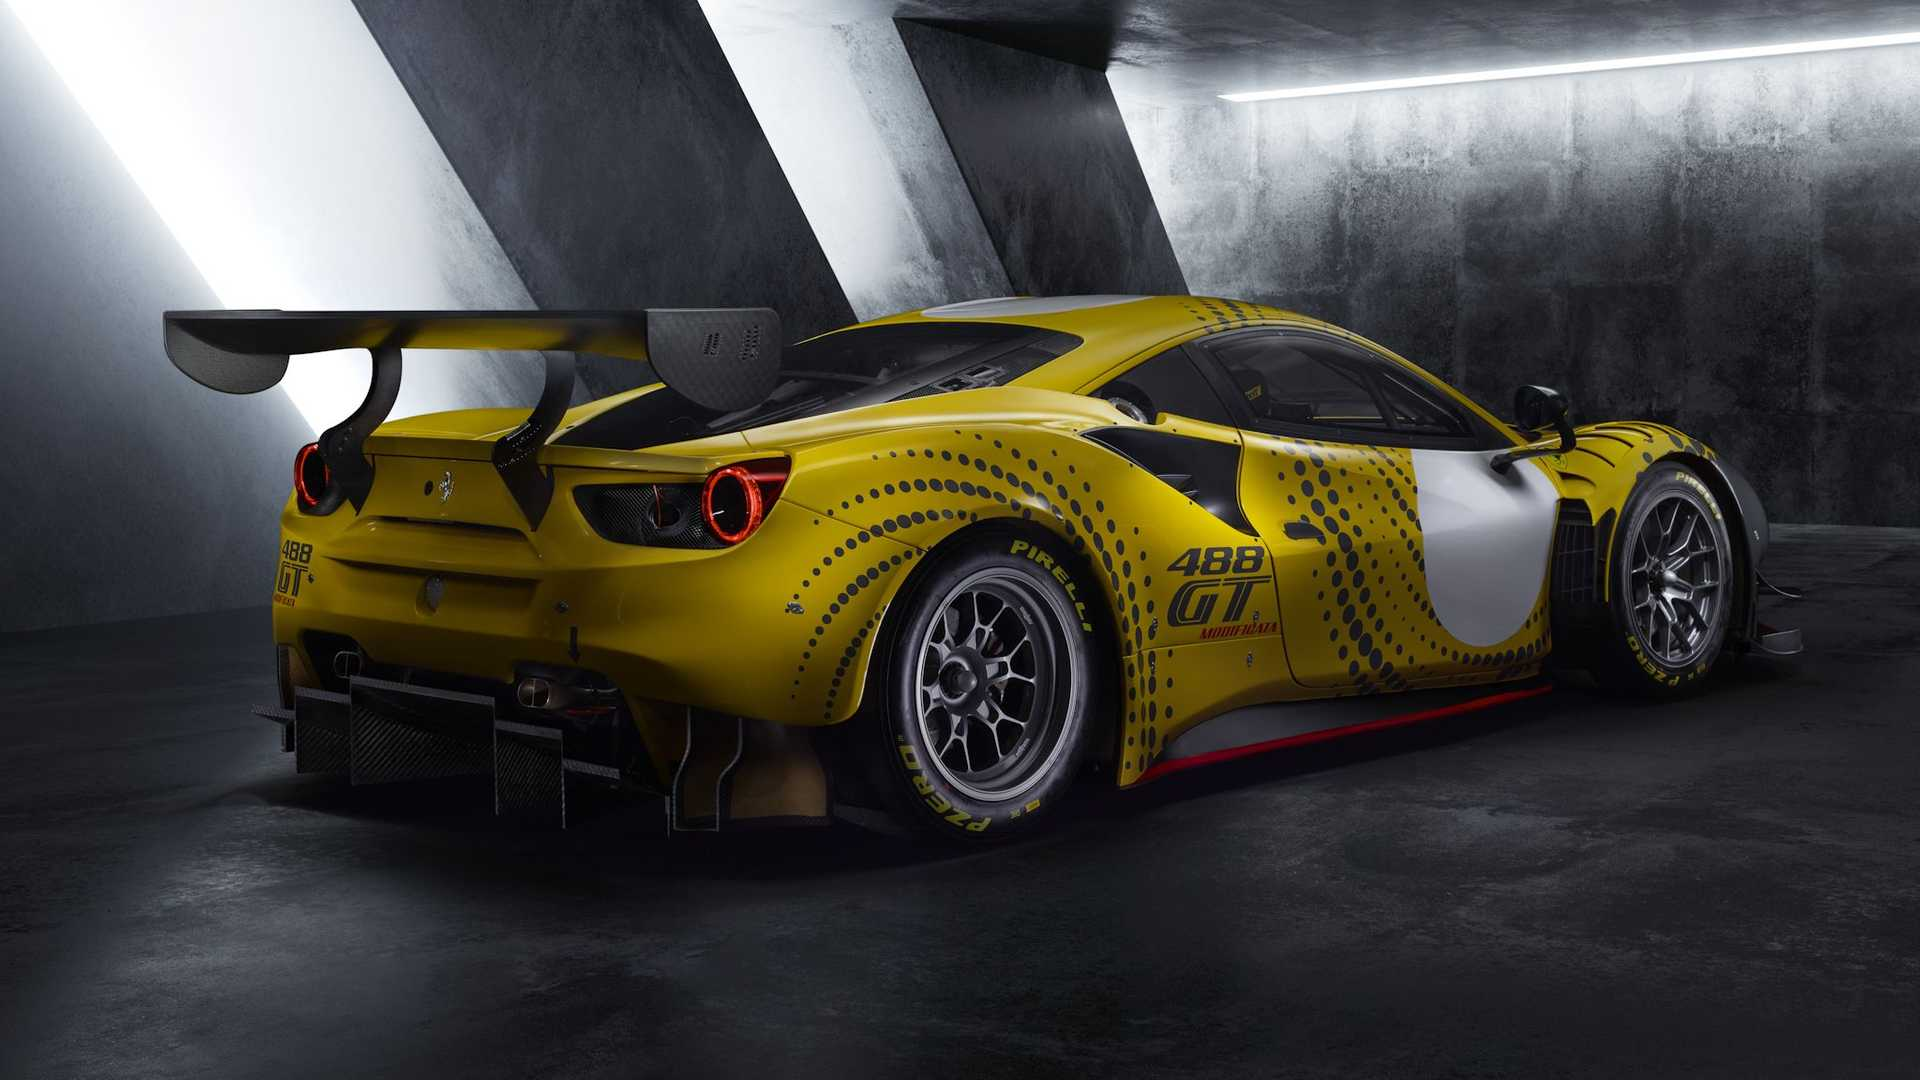 Ferrari 488 GT Modificata Track Car